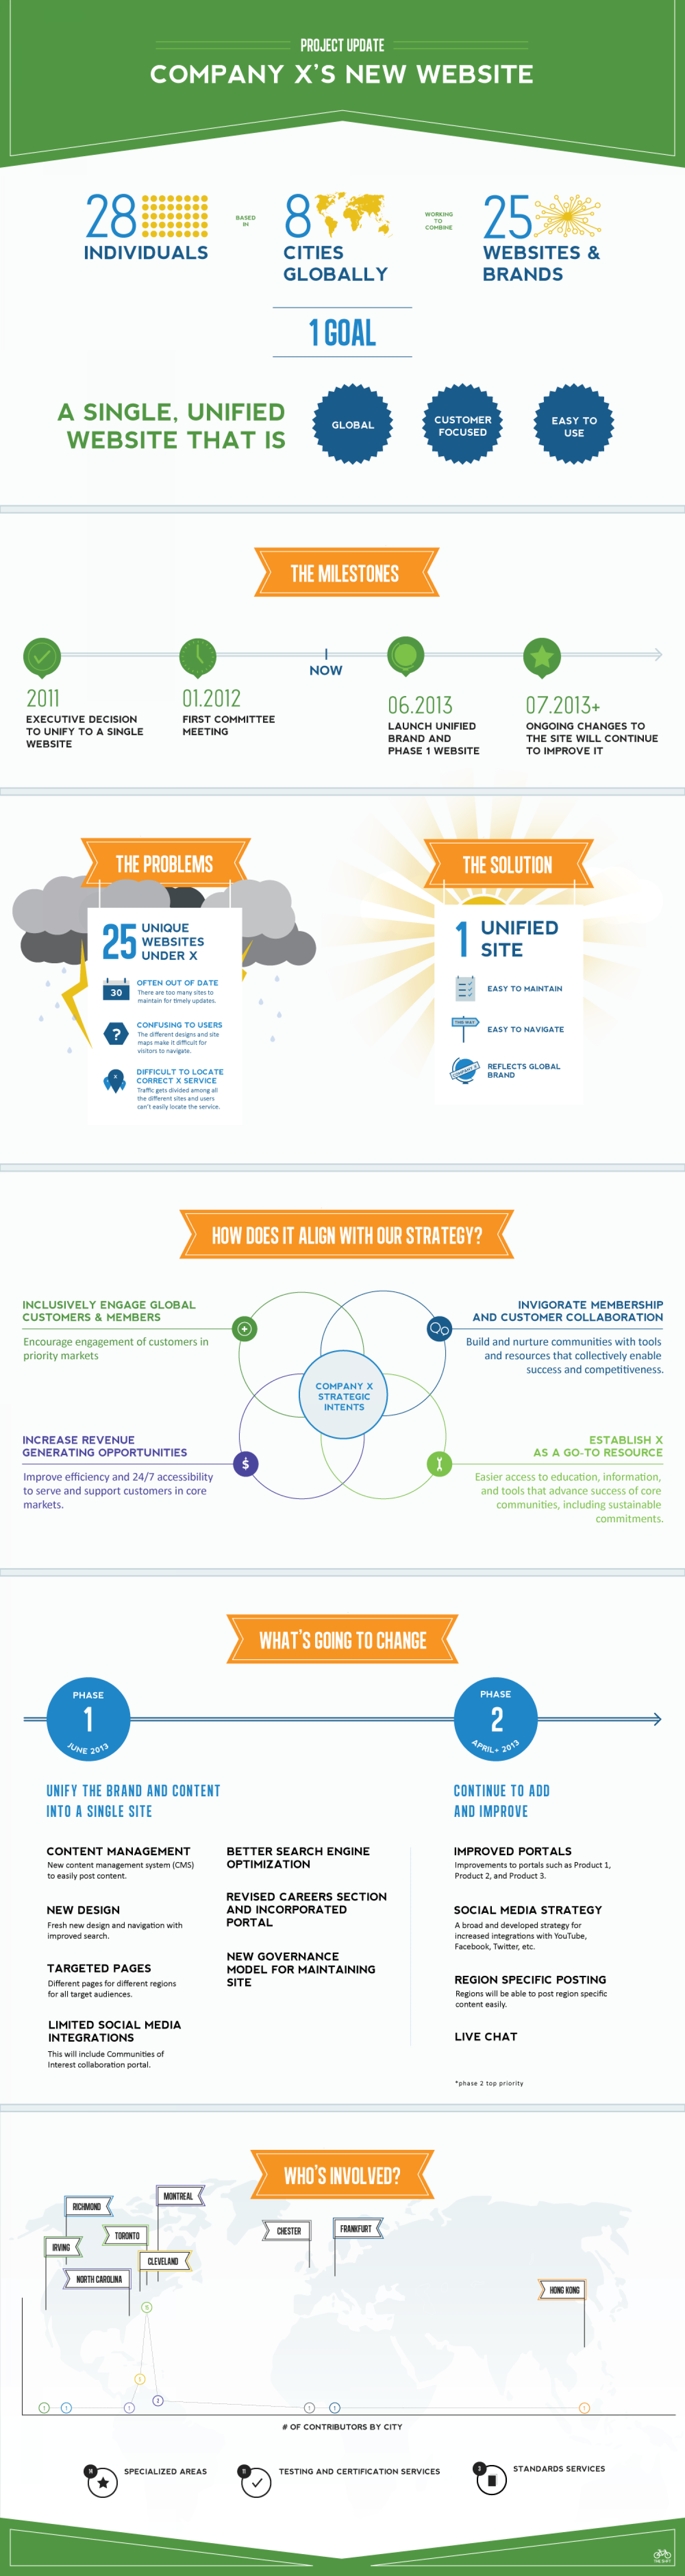 Company Project Update (Internal) Infographic